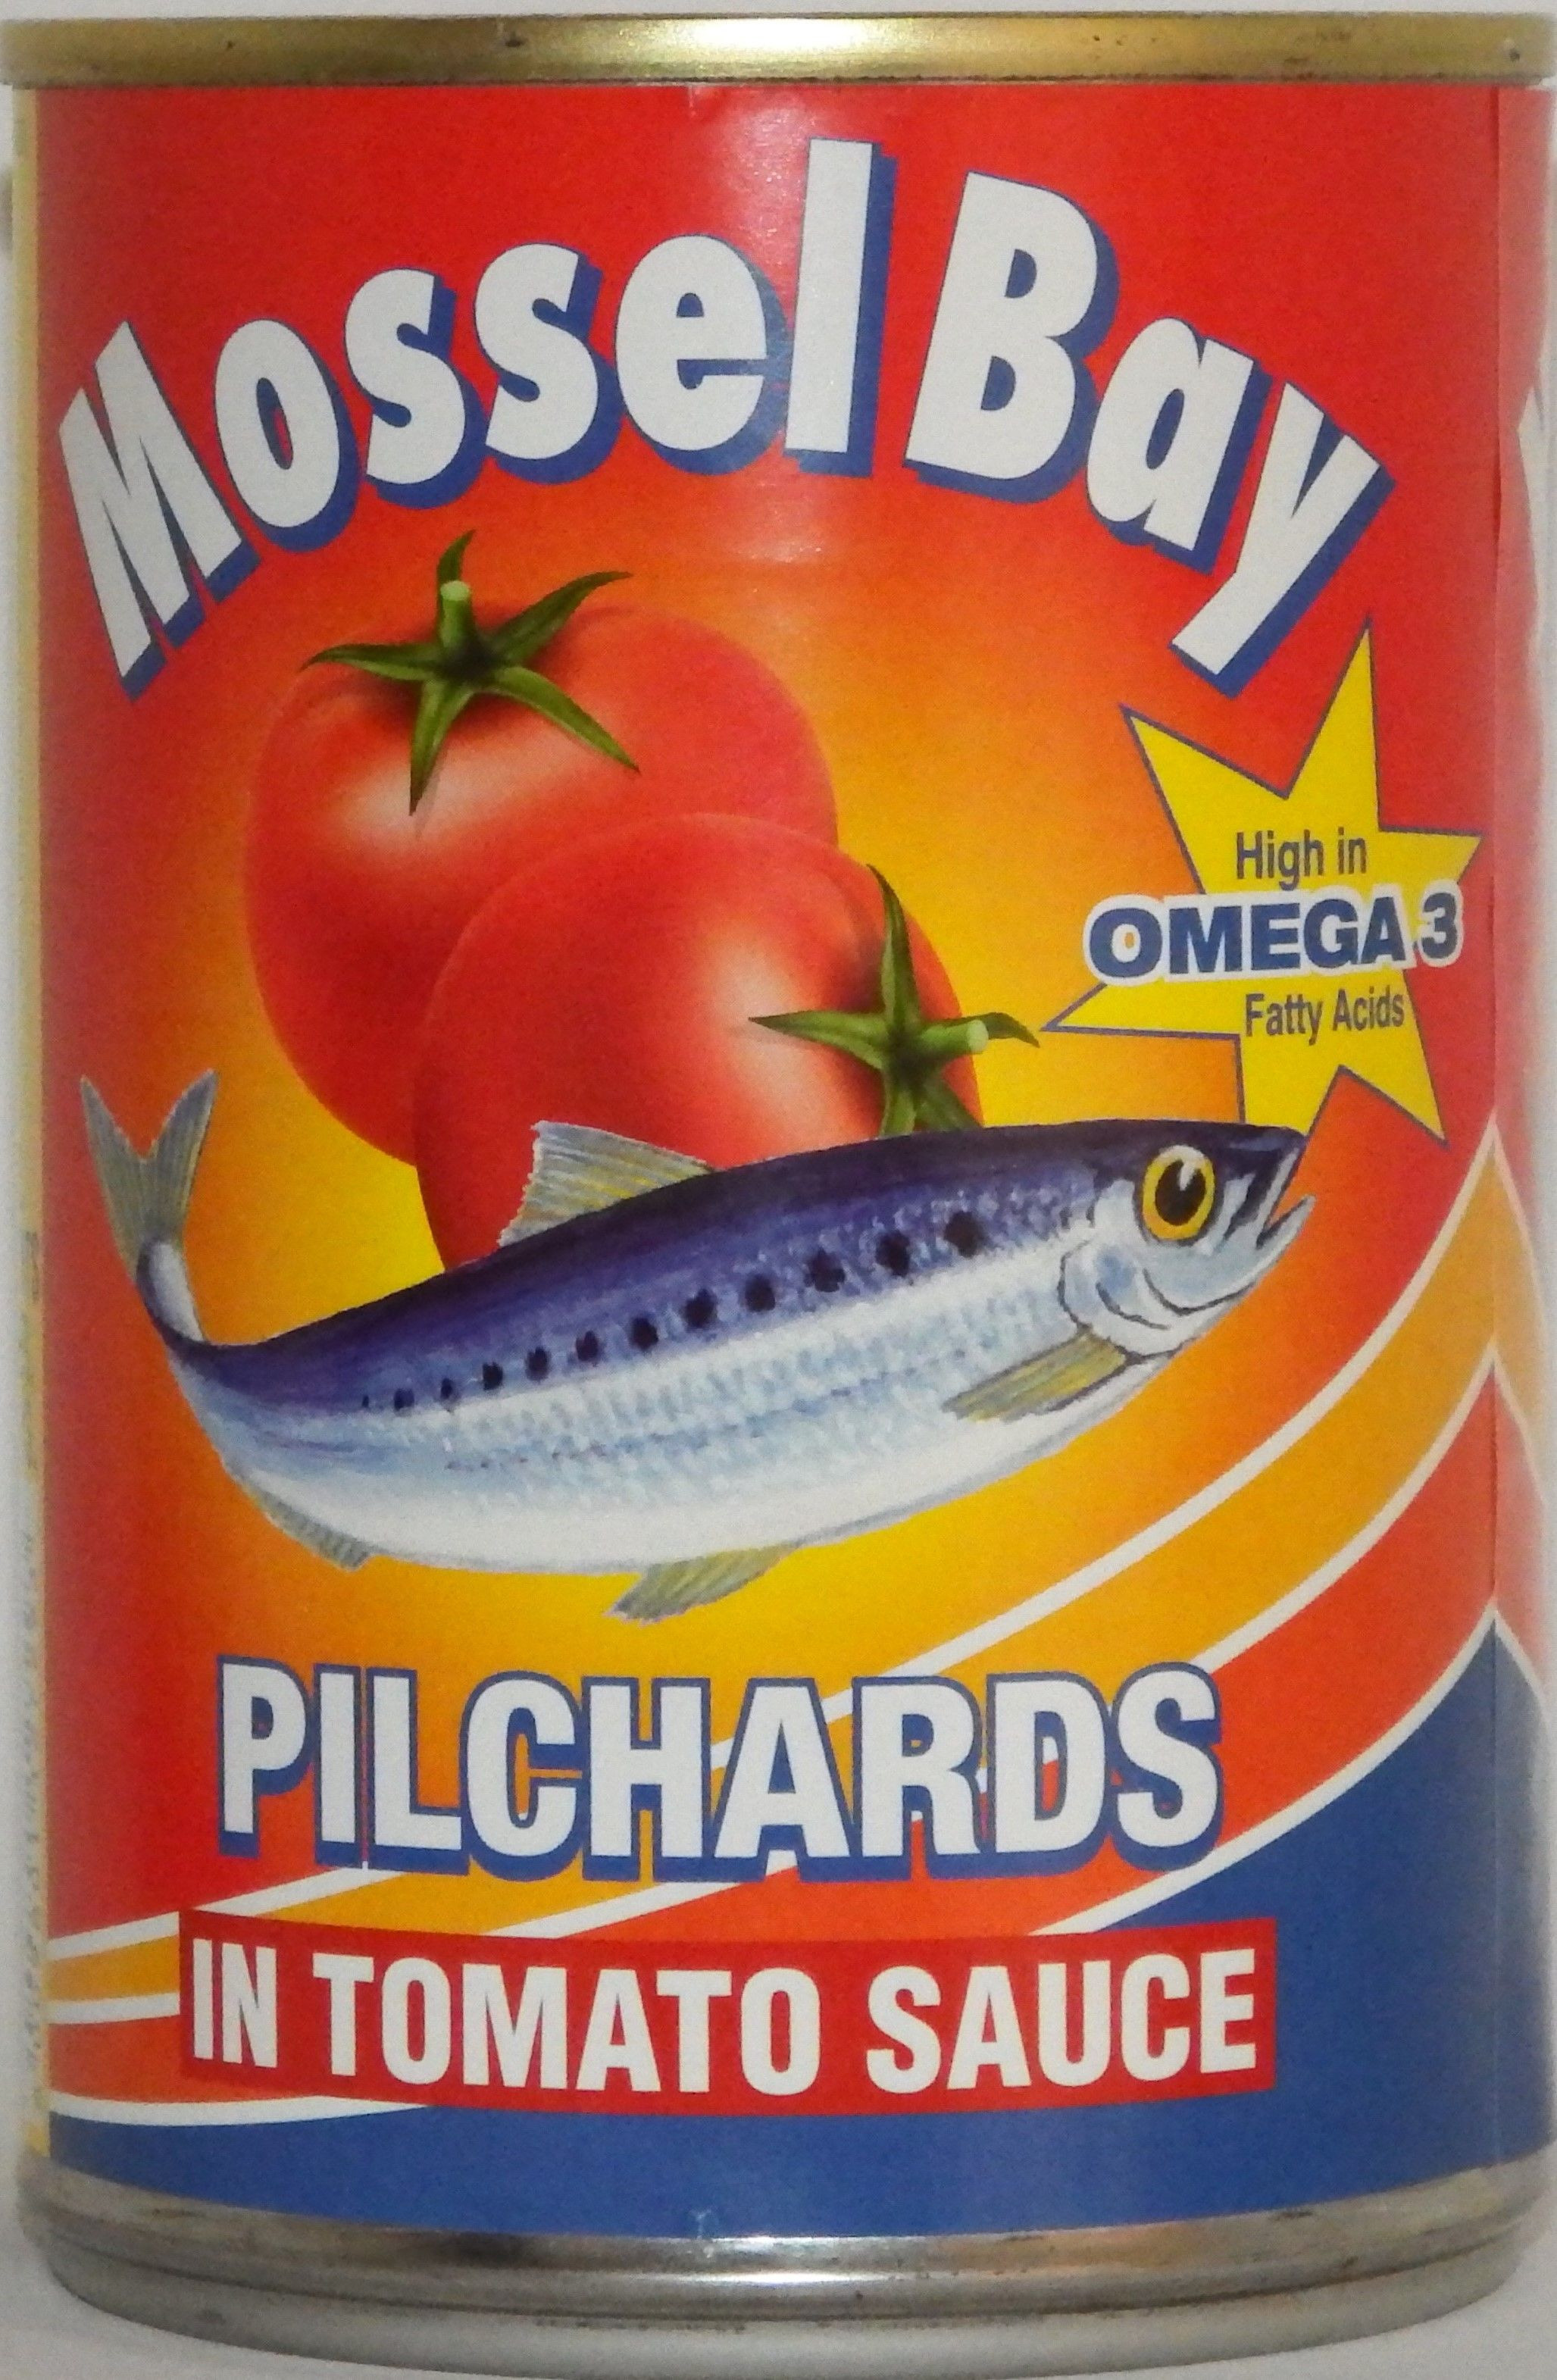 Canned Pilchards